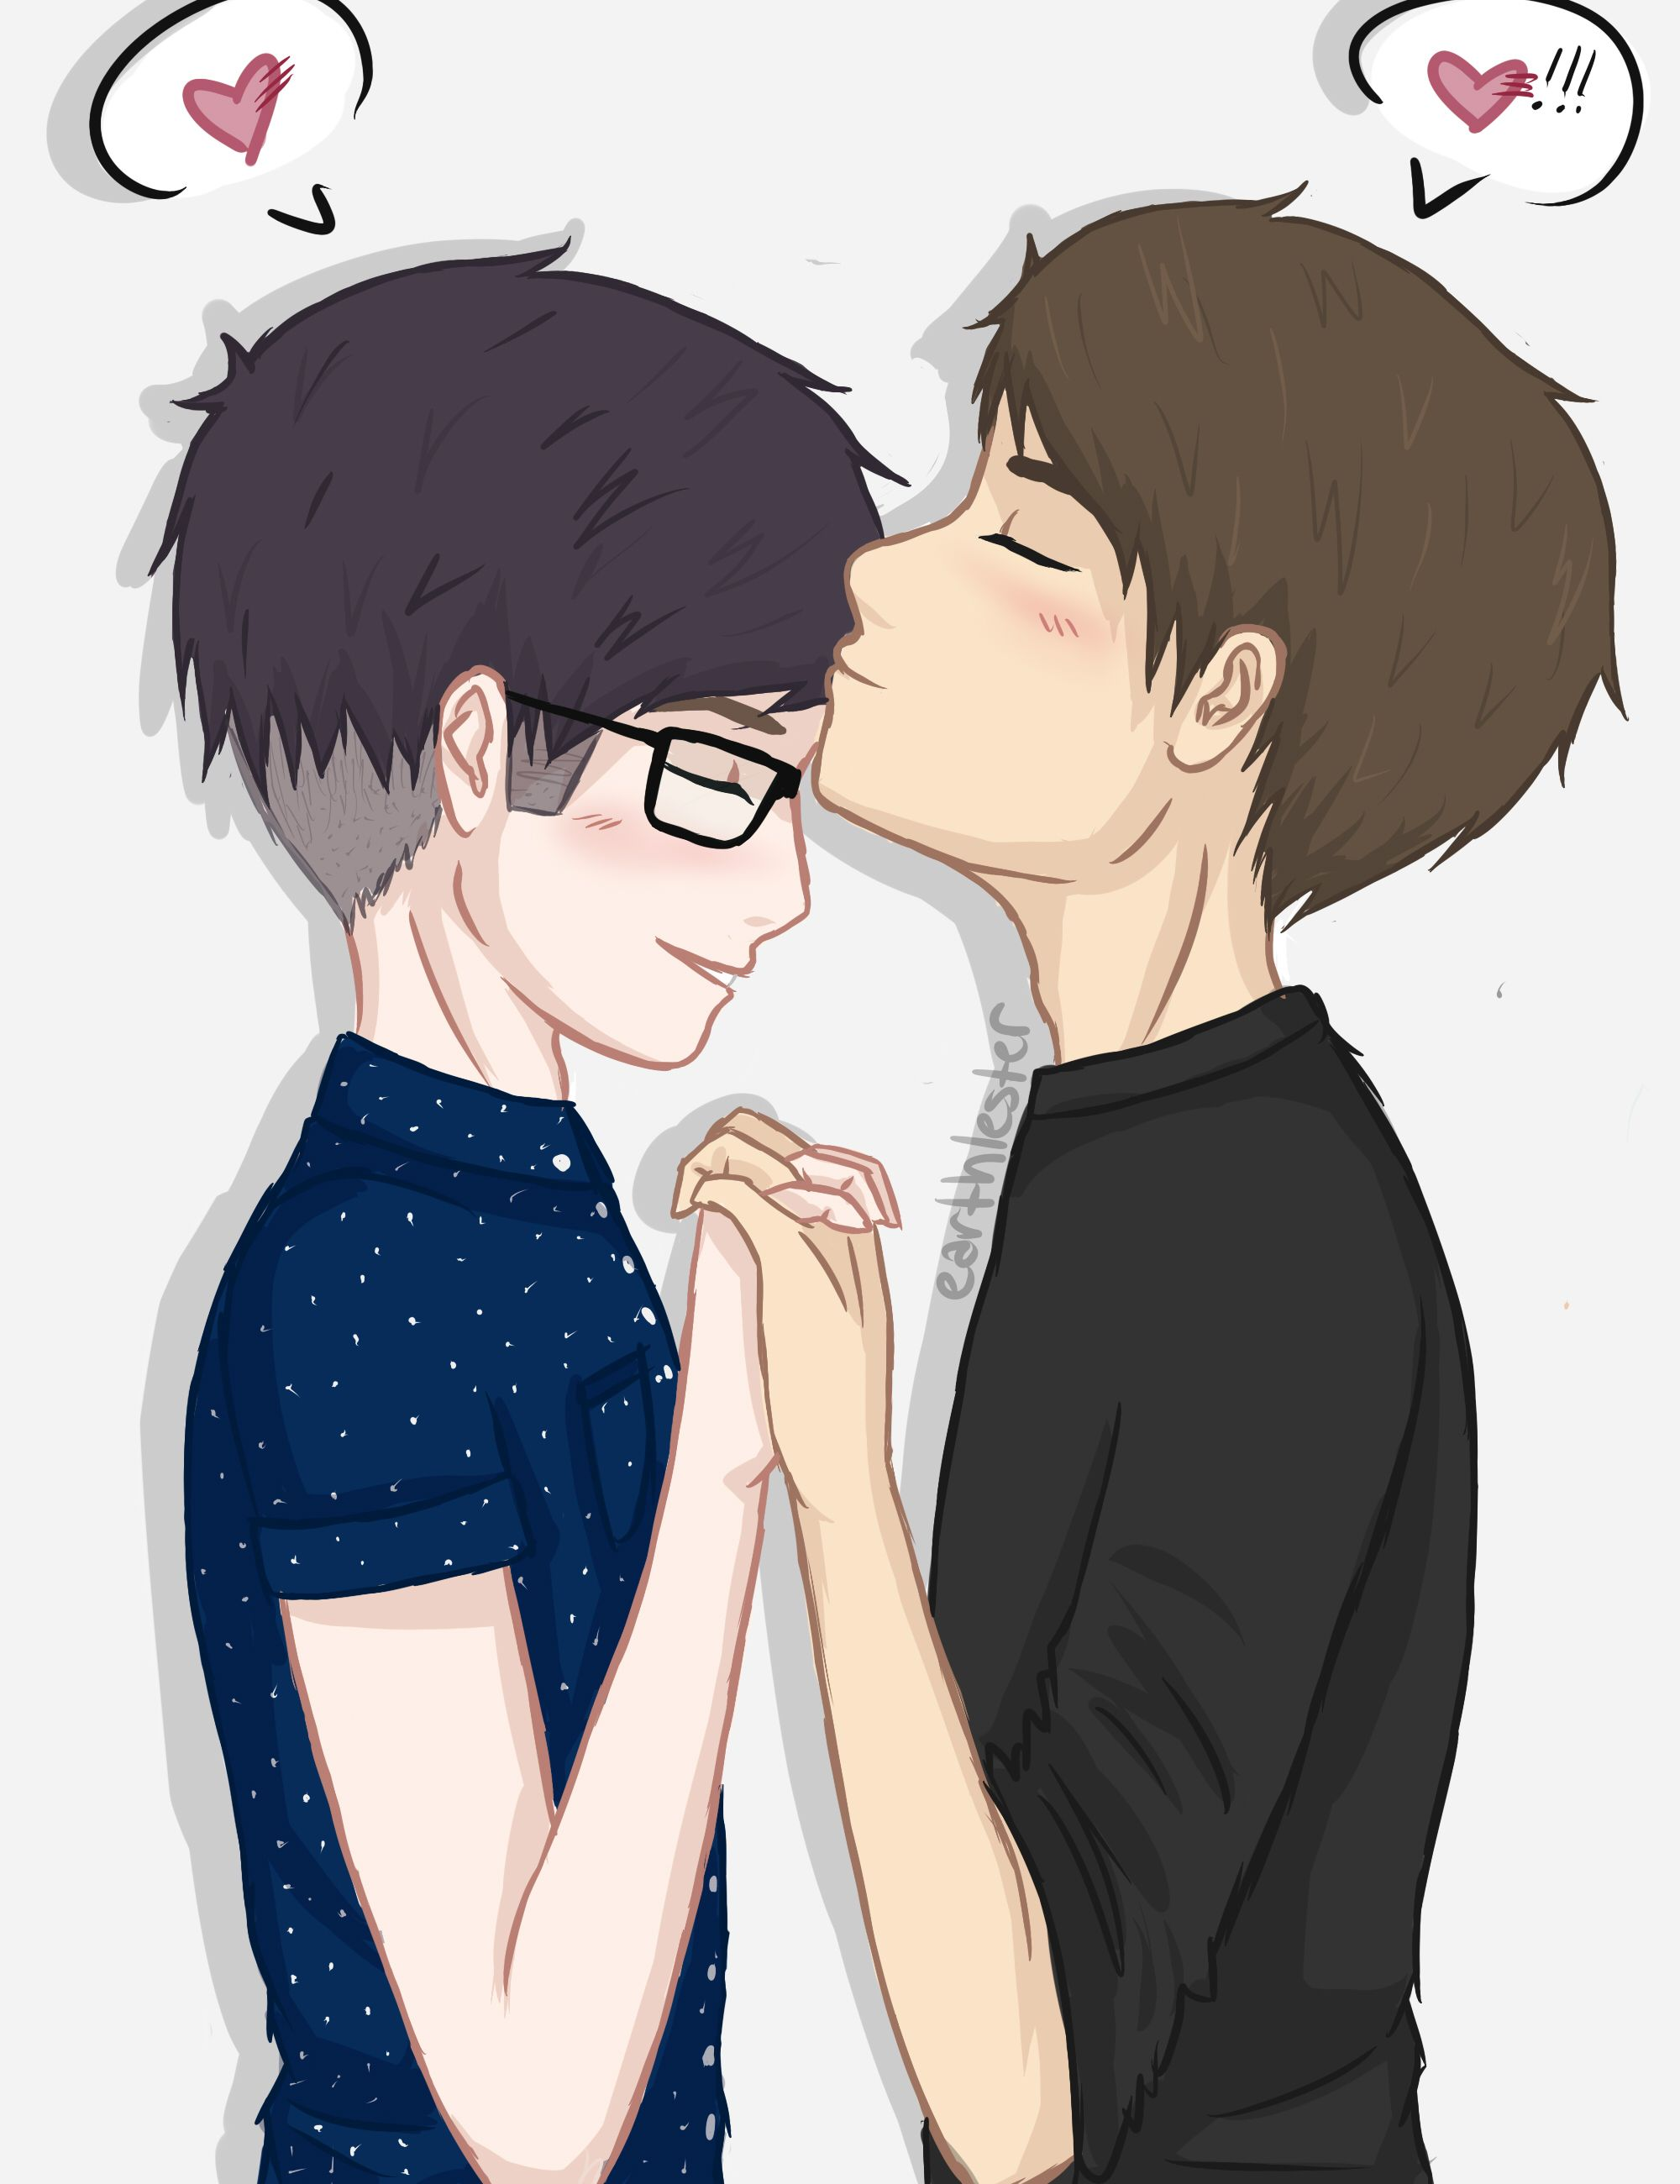 Aaaaah I Just Can T Handle The Cuteness Dan And Phil Fanart Dan And Phil Phan Fanart